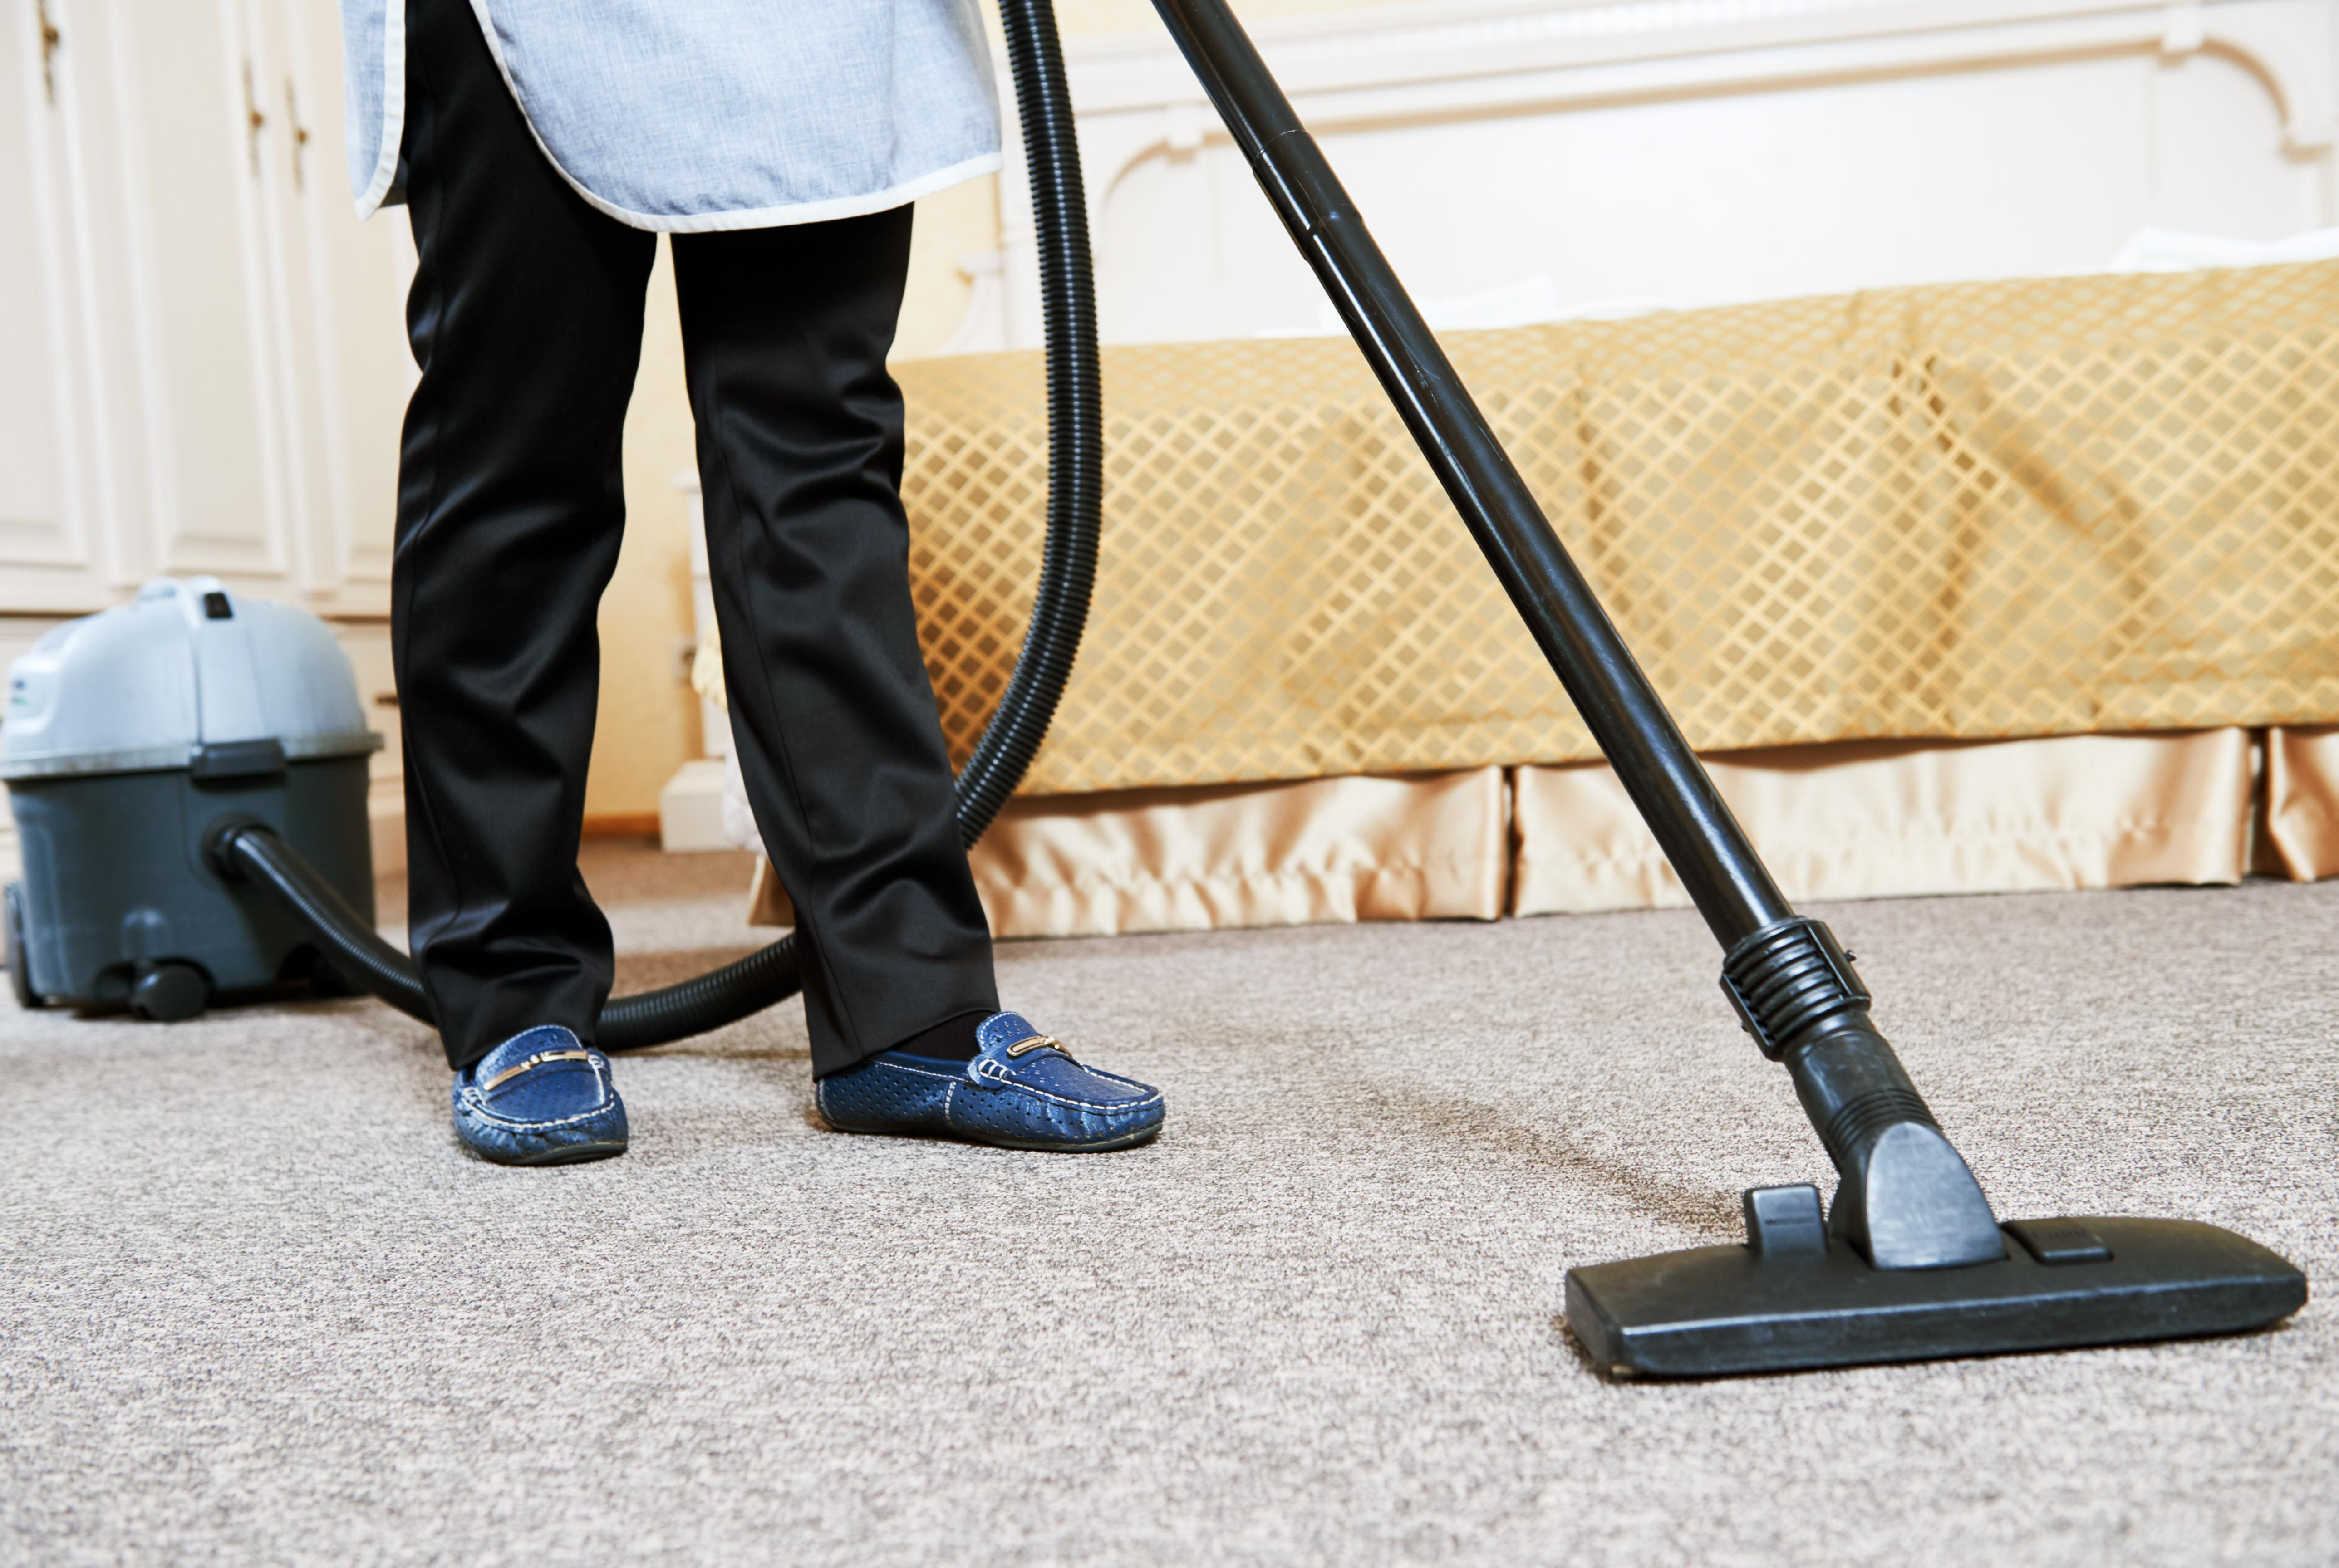 carpet cleaning services in Barnet